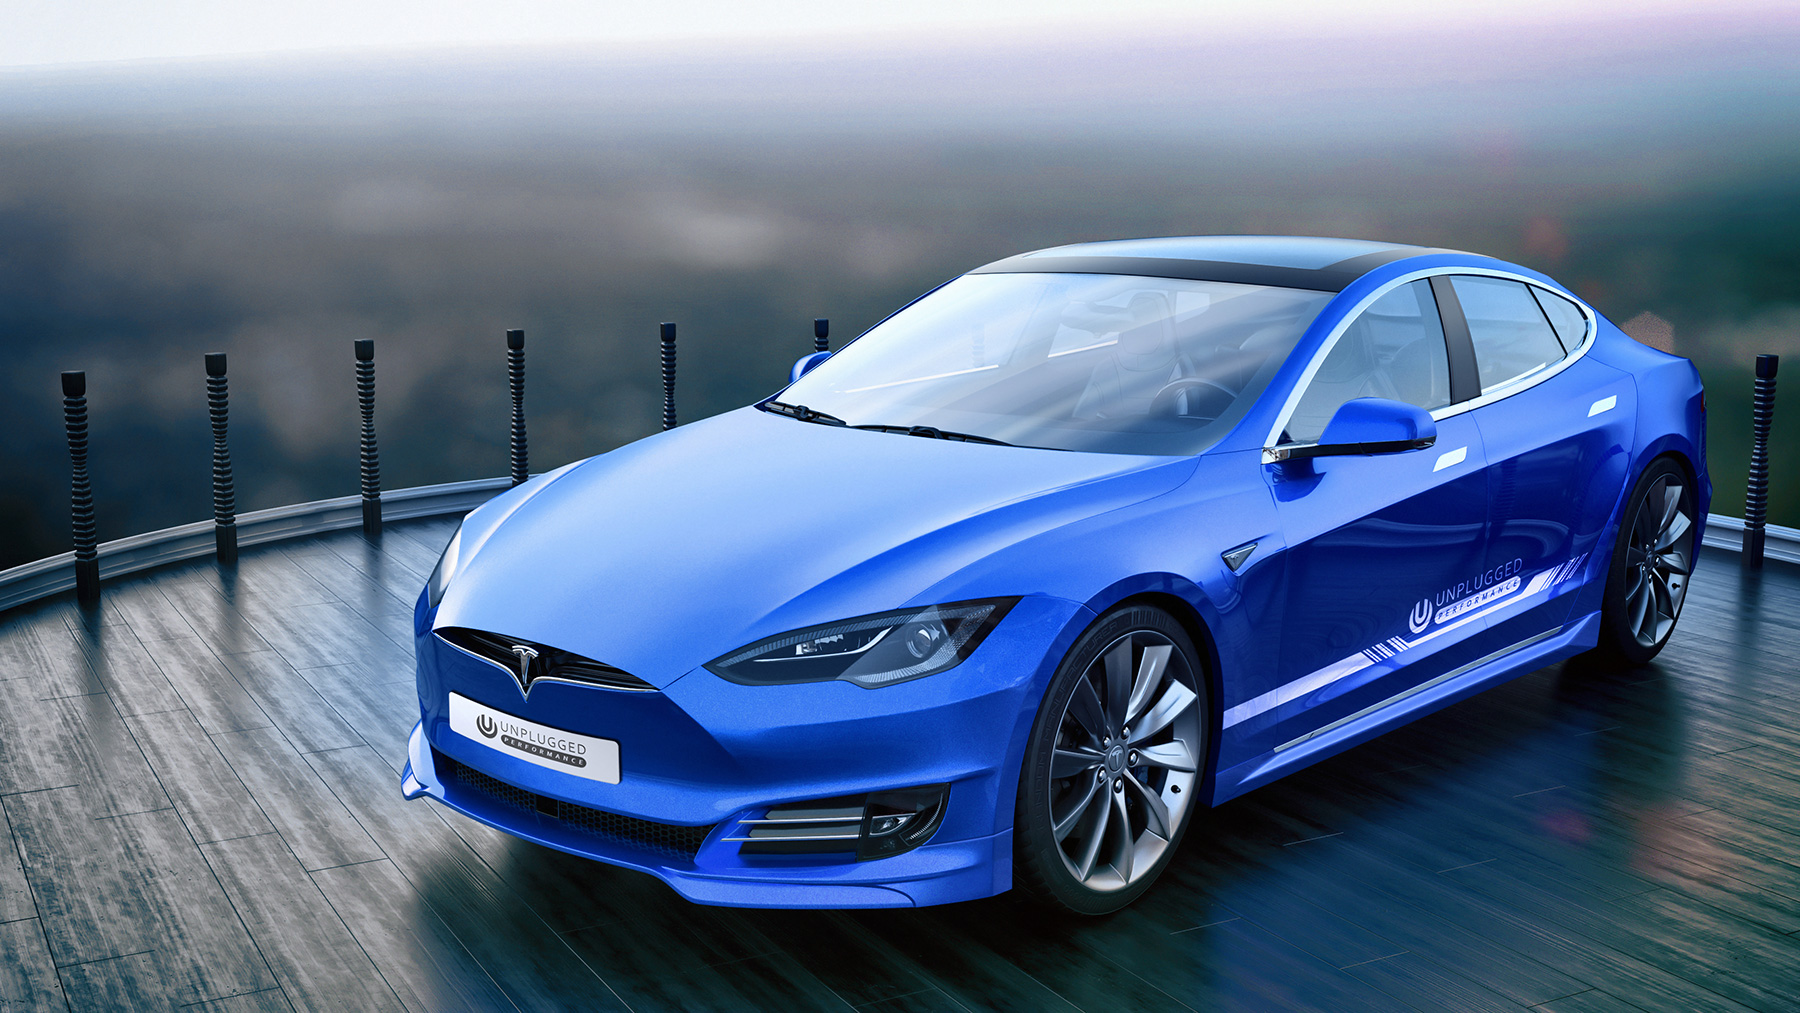 Tuning Company Proposes New Face For Old Tesla Model S Autoevolution